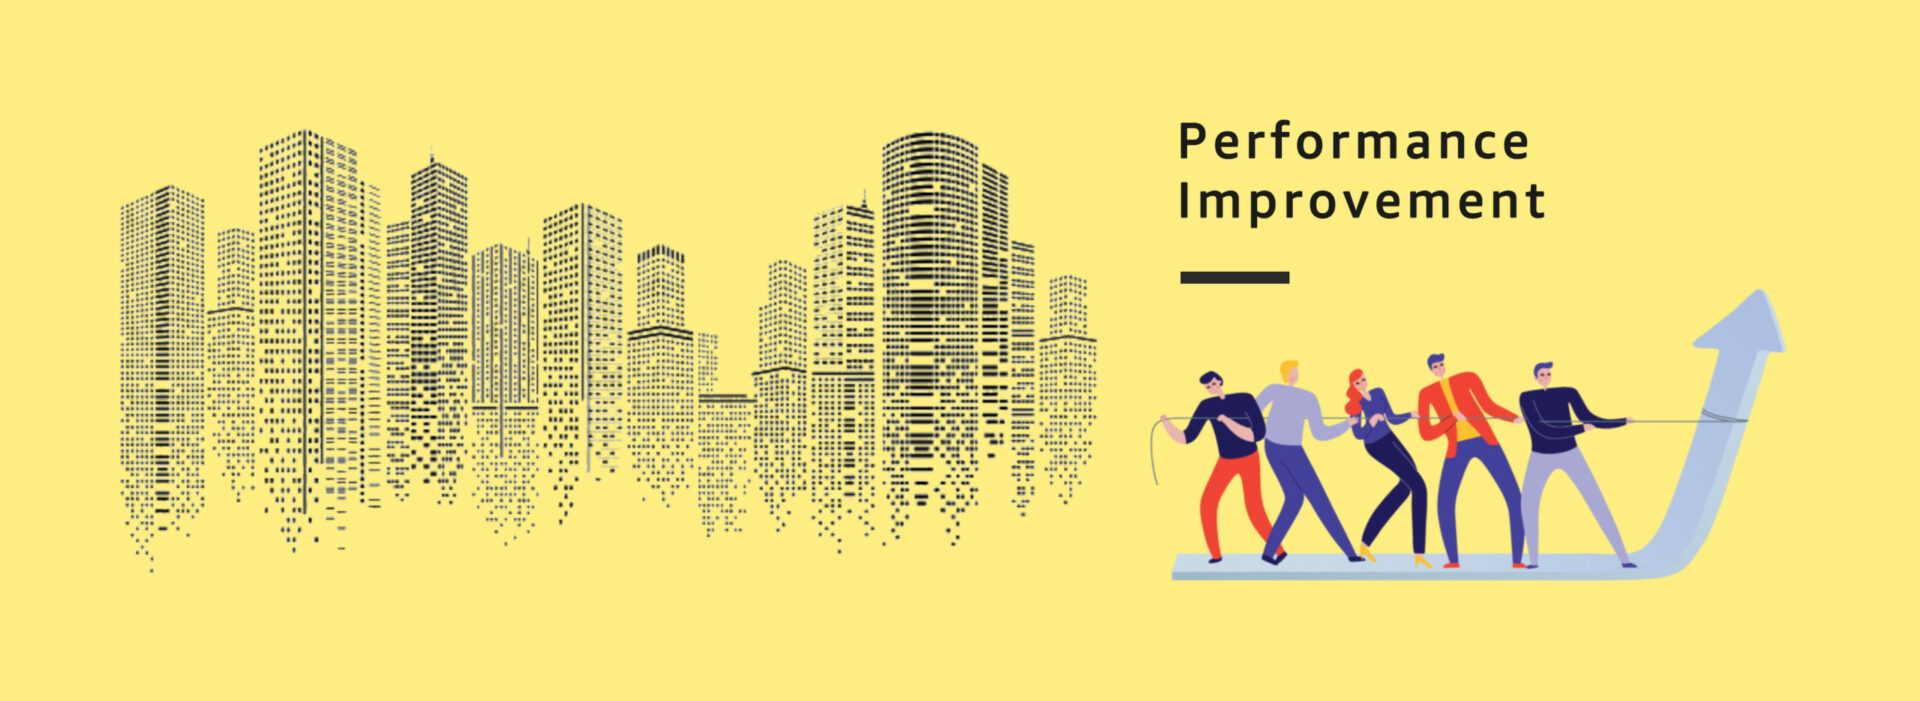 Truth About Performance: Helping Managers Improve Performance (Asia Pacific)